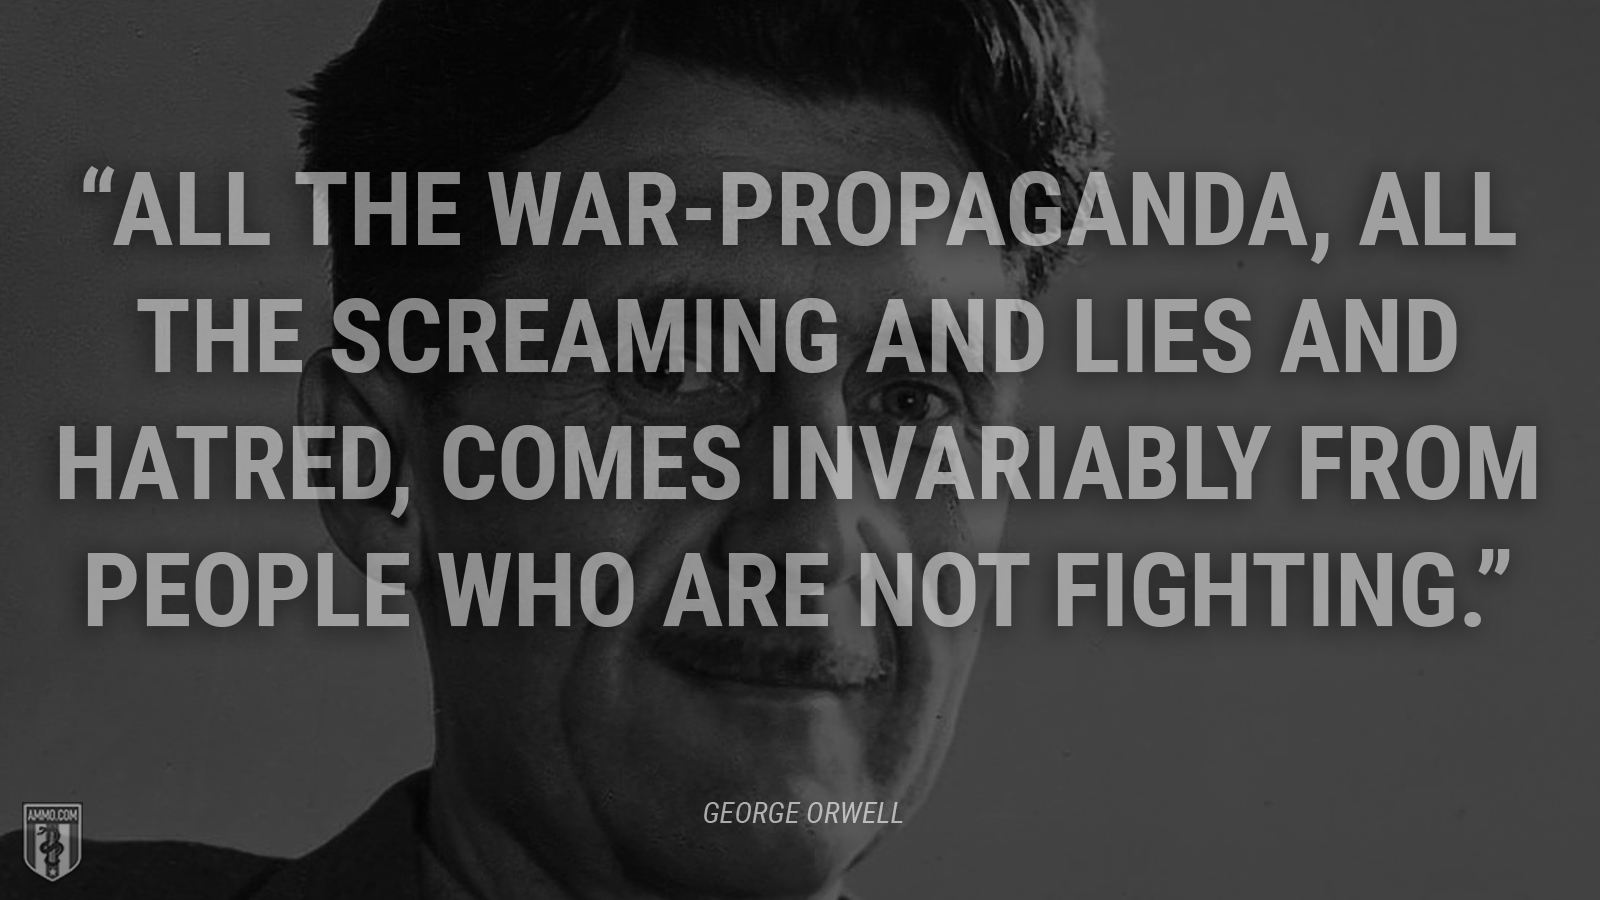 """All the war-propaganda, all the screaming and lies and hatred, comes invariably from people who are not fighting."" - George Orwell"